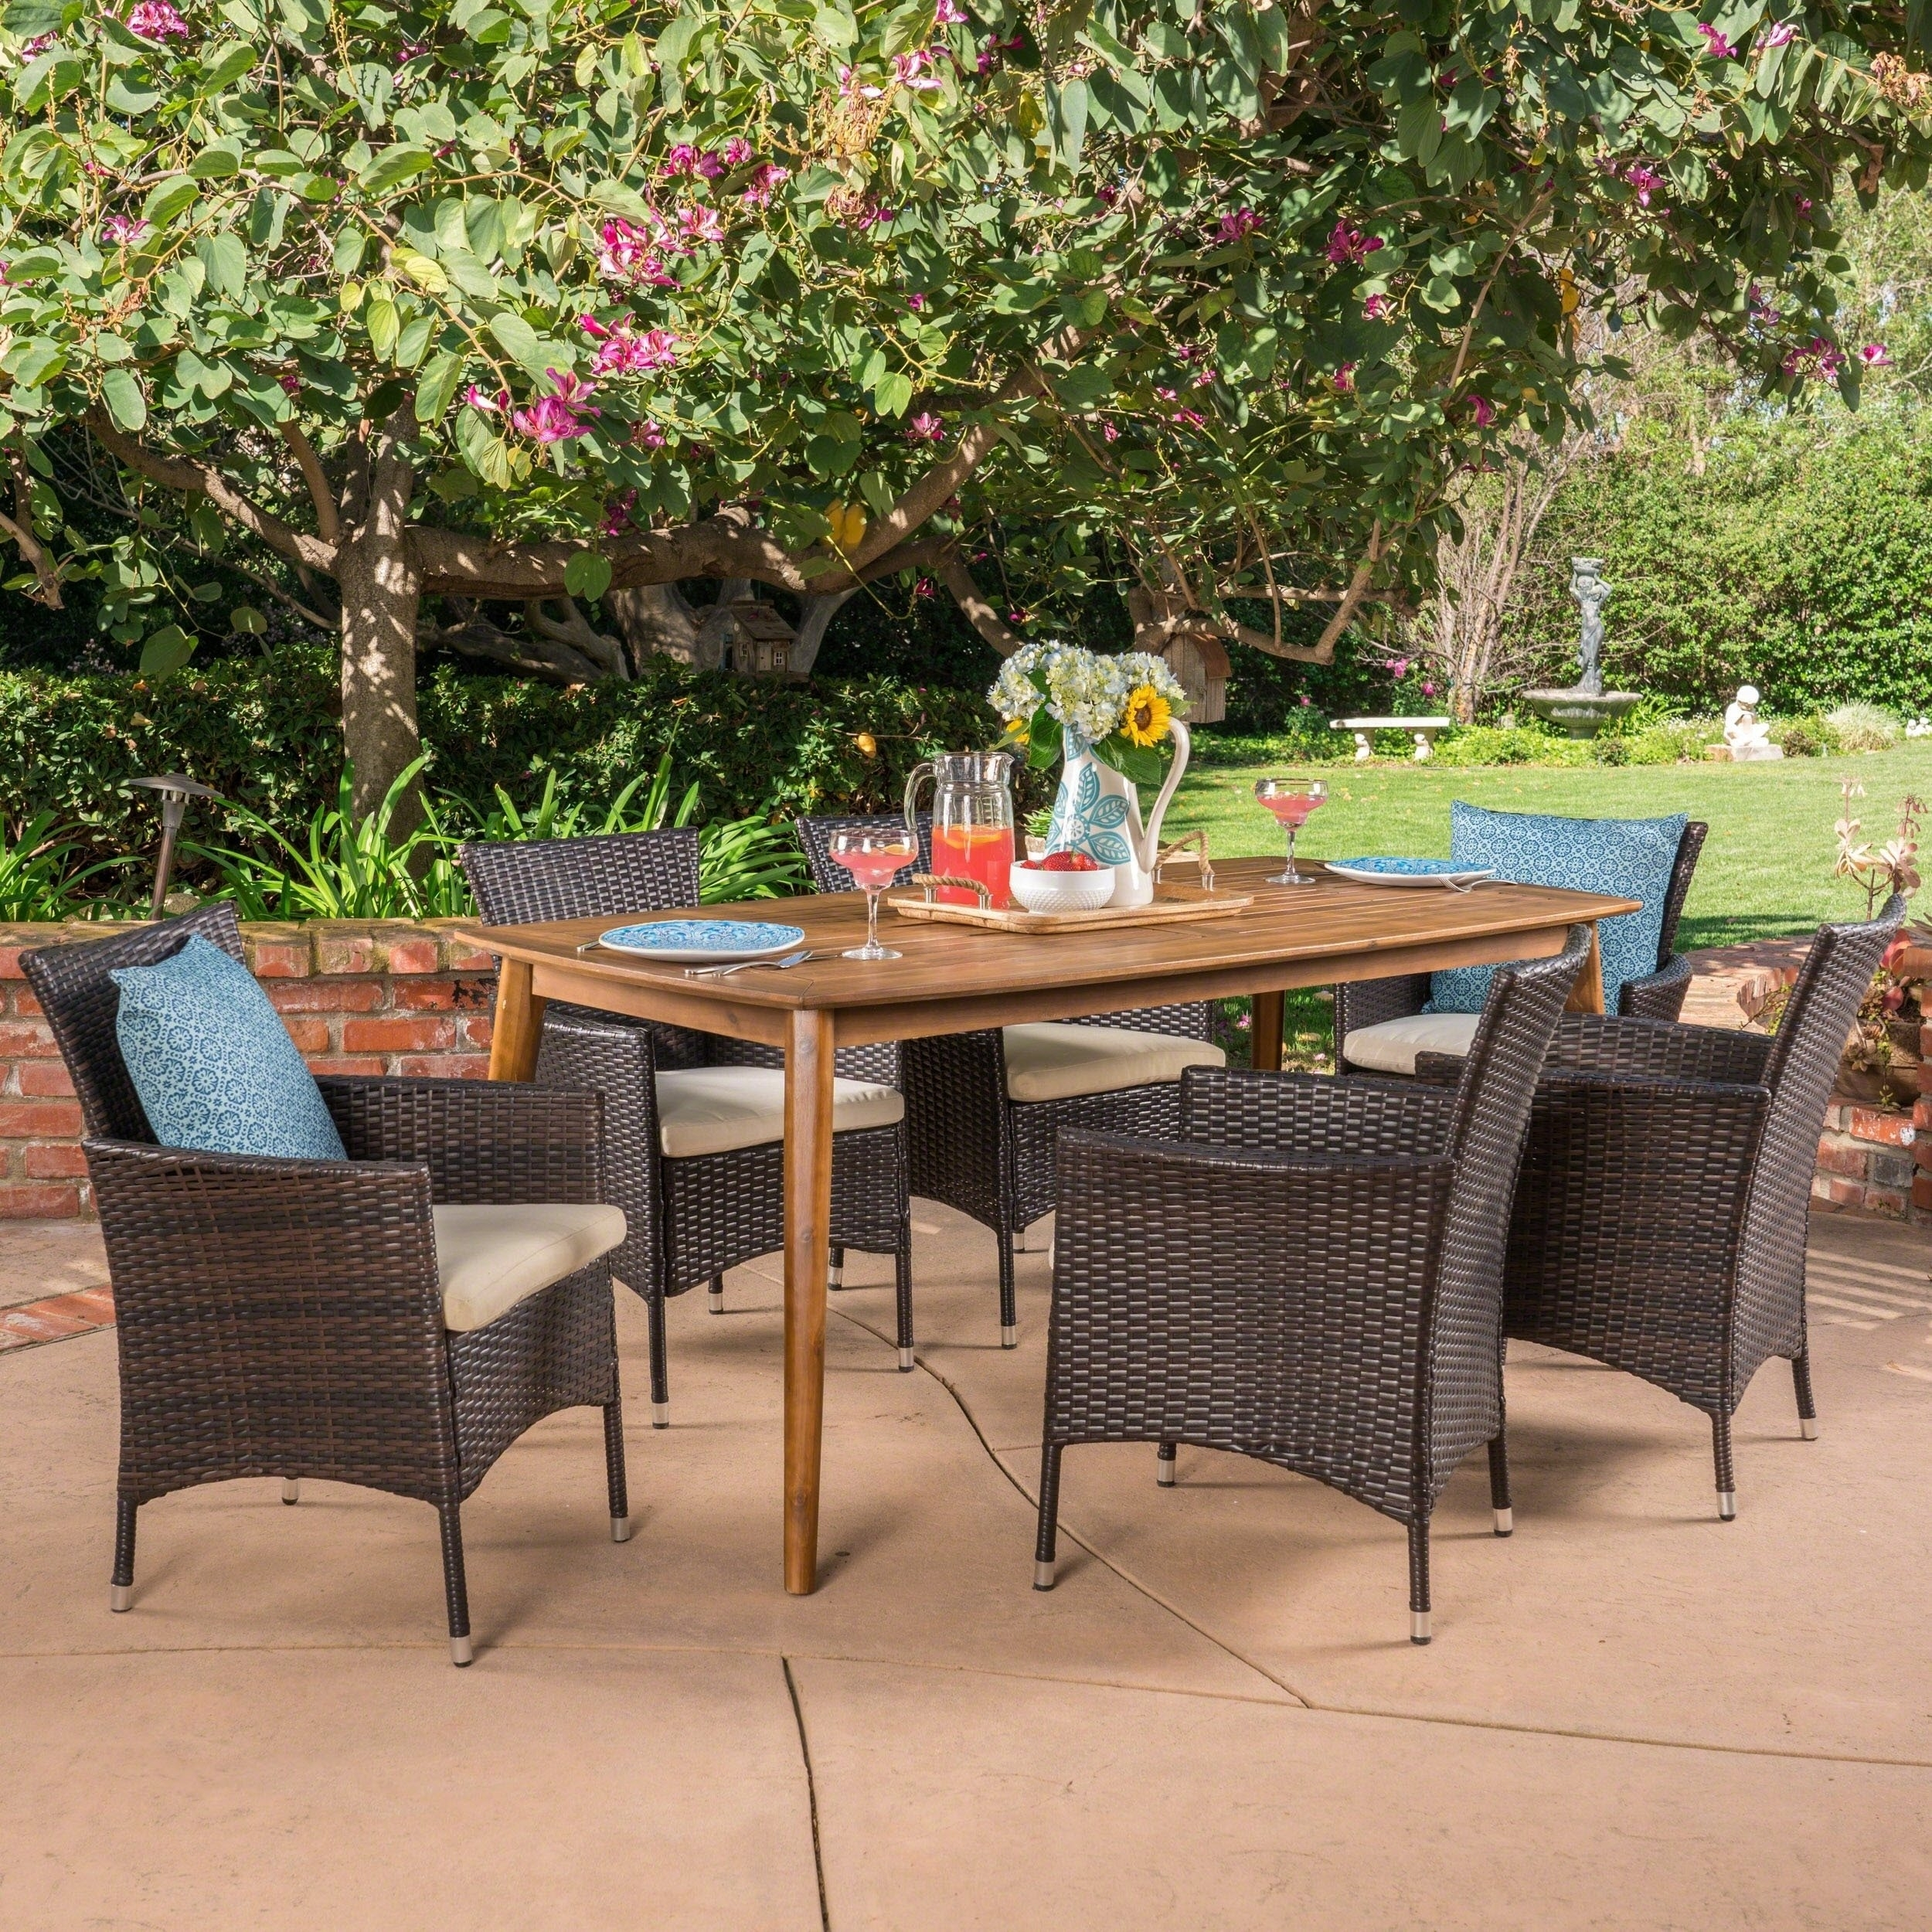 Shop Jaxon Outdoor 7 Piece Multibrown Pe Wicker Dining Set With Throughout 2017 Jaxon 7 Piece Rectangle Dining Sets With Wood Chairs (View 7 of 20)